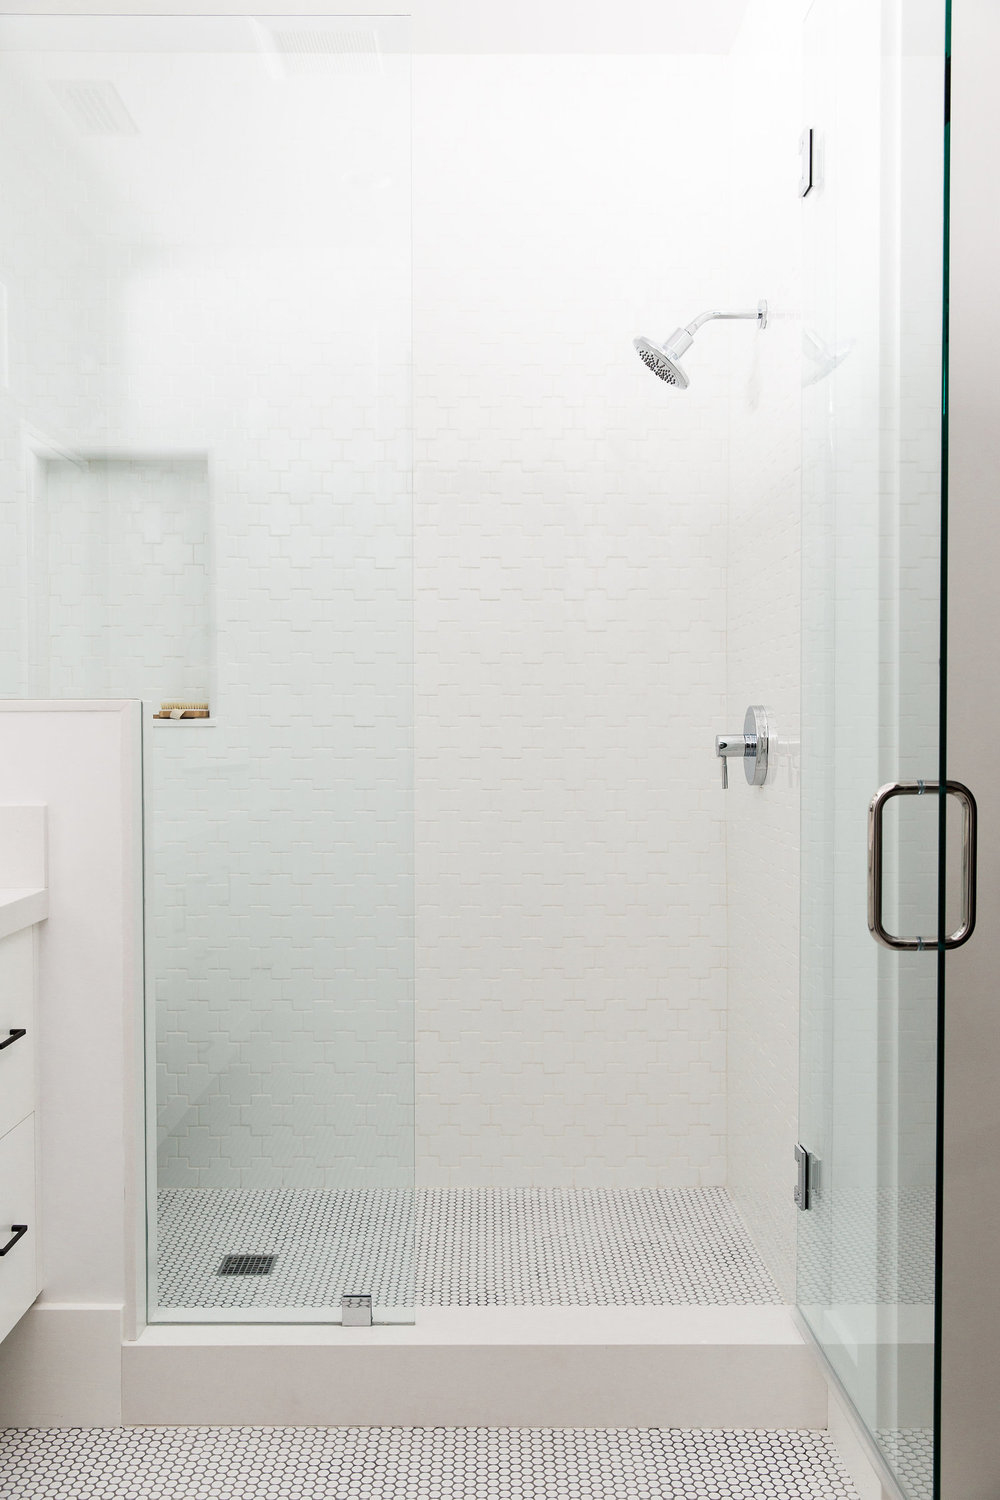 Swiss+Cross+Tile+Shower+||+Studio+McGee.jpg